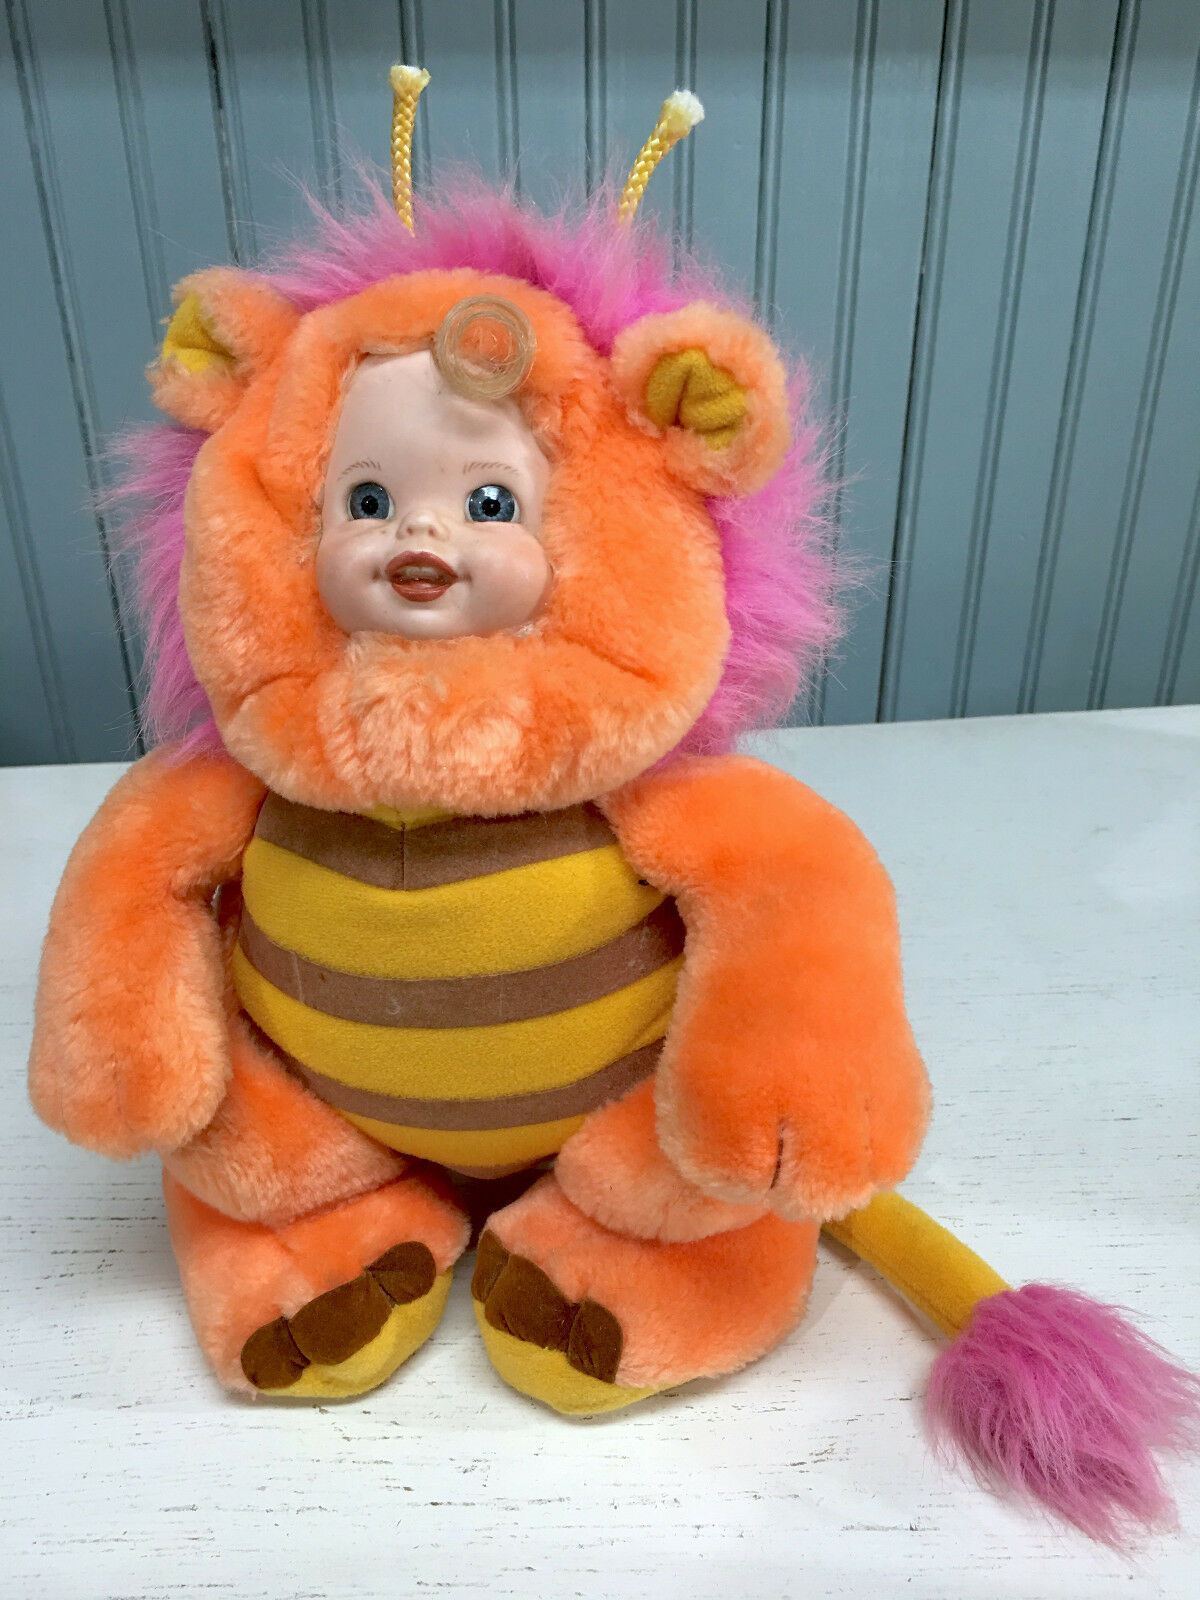 Wuzzles Babyface Bumblelion One of a Kind Hybrid Plush VTG Hasbro Art Piece